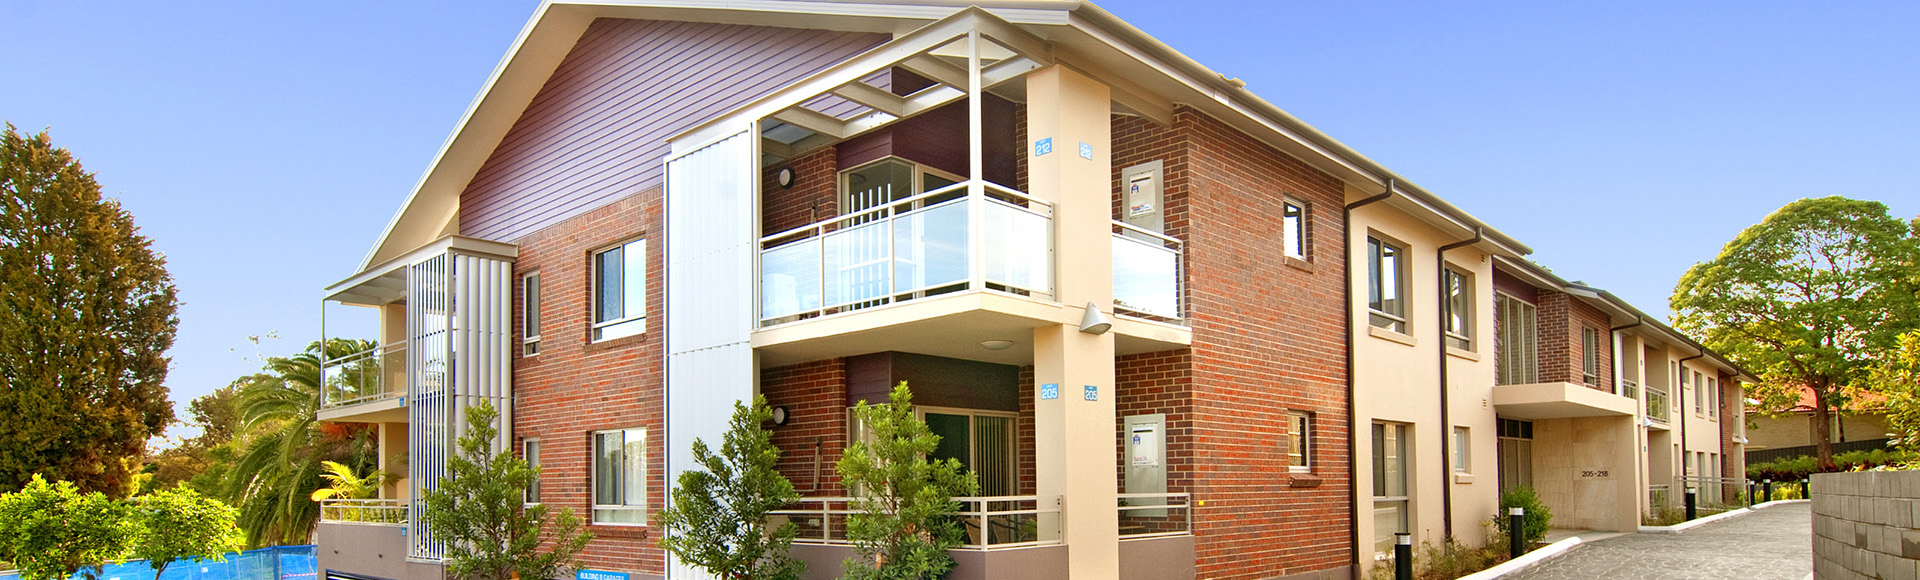 The Willows Retirement Village, Winston Hills NSW | Stockland